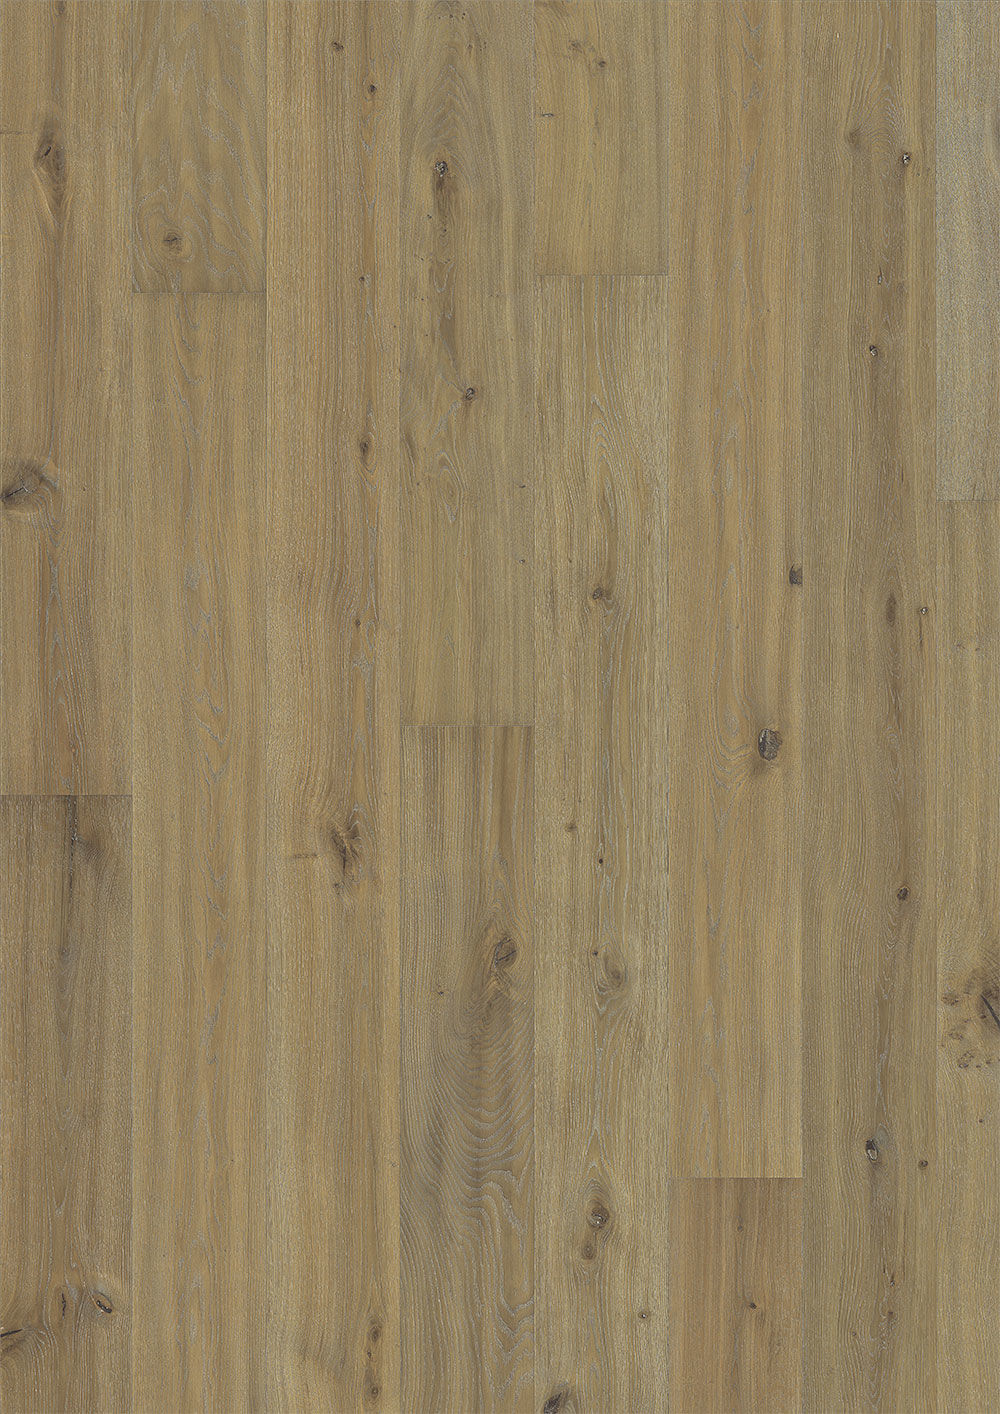 Kahrs Supreme Smaland Hardwood Flooring Oak More